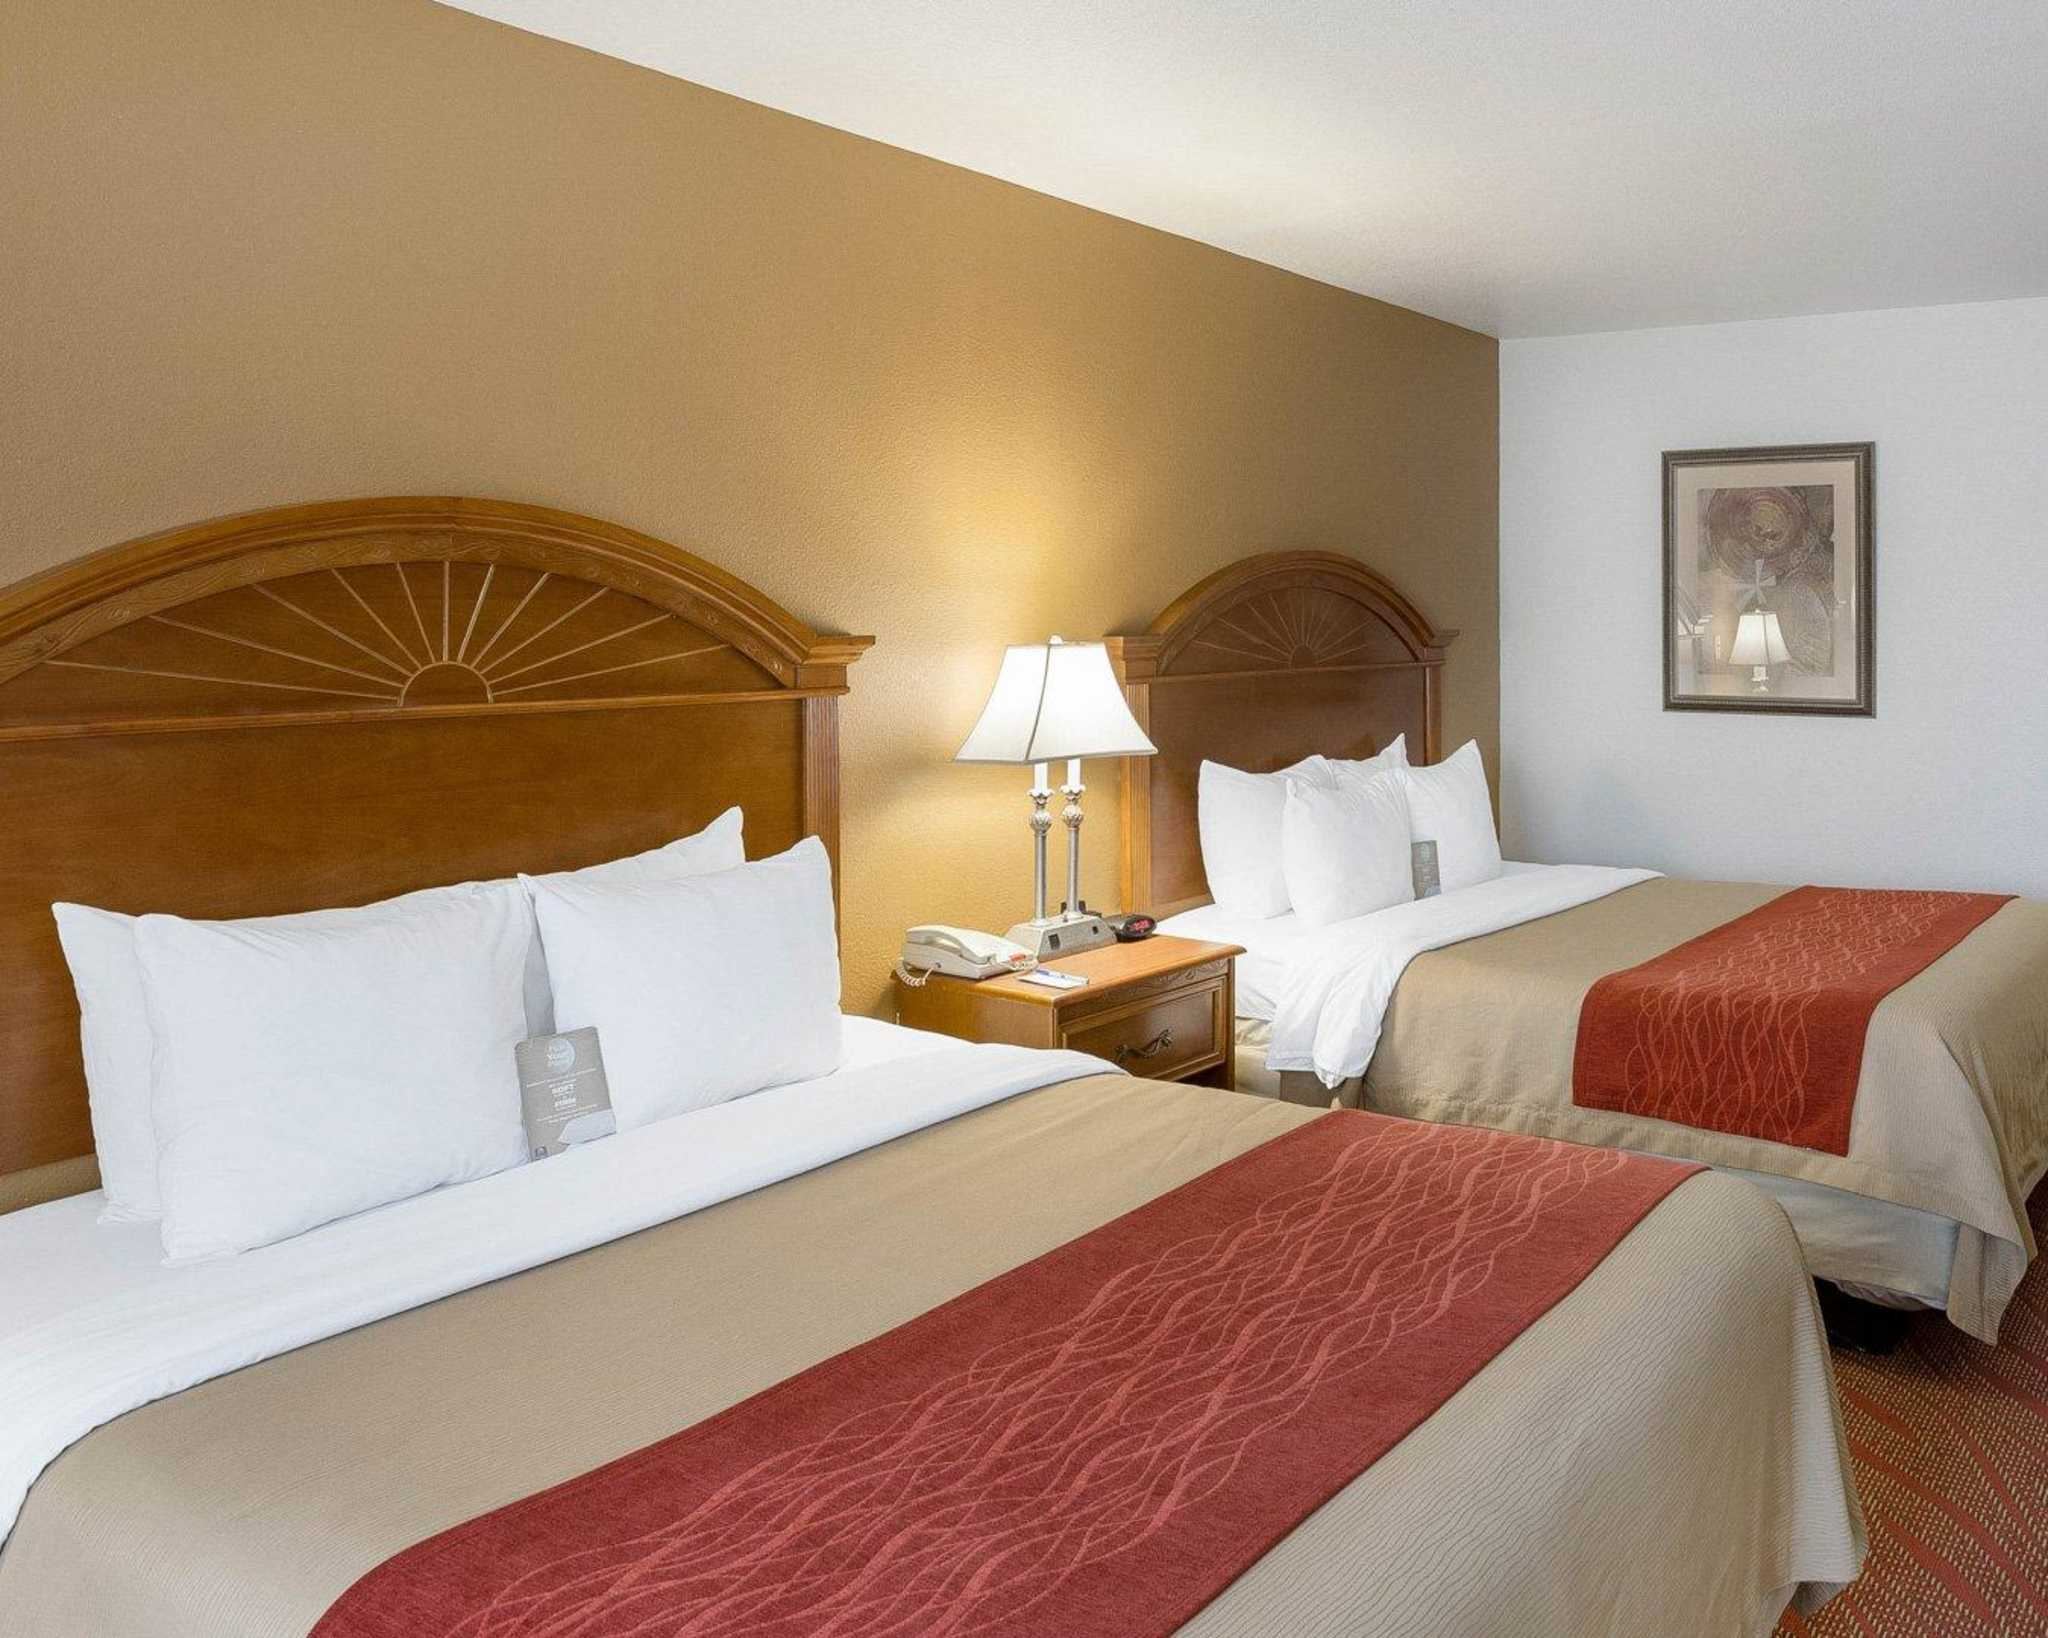 Comfort Inn Amp Suites Near Medical Center At 6039 Ih 10